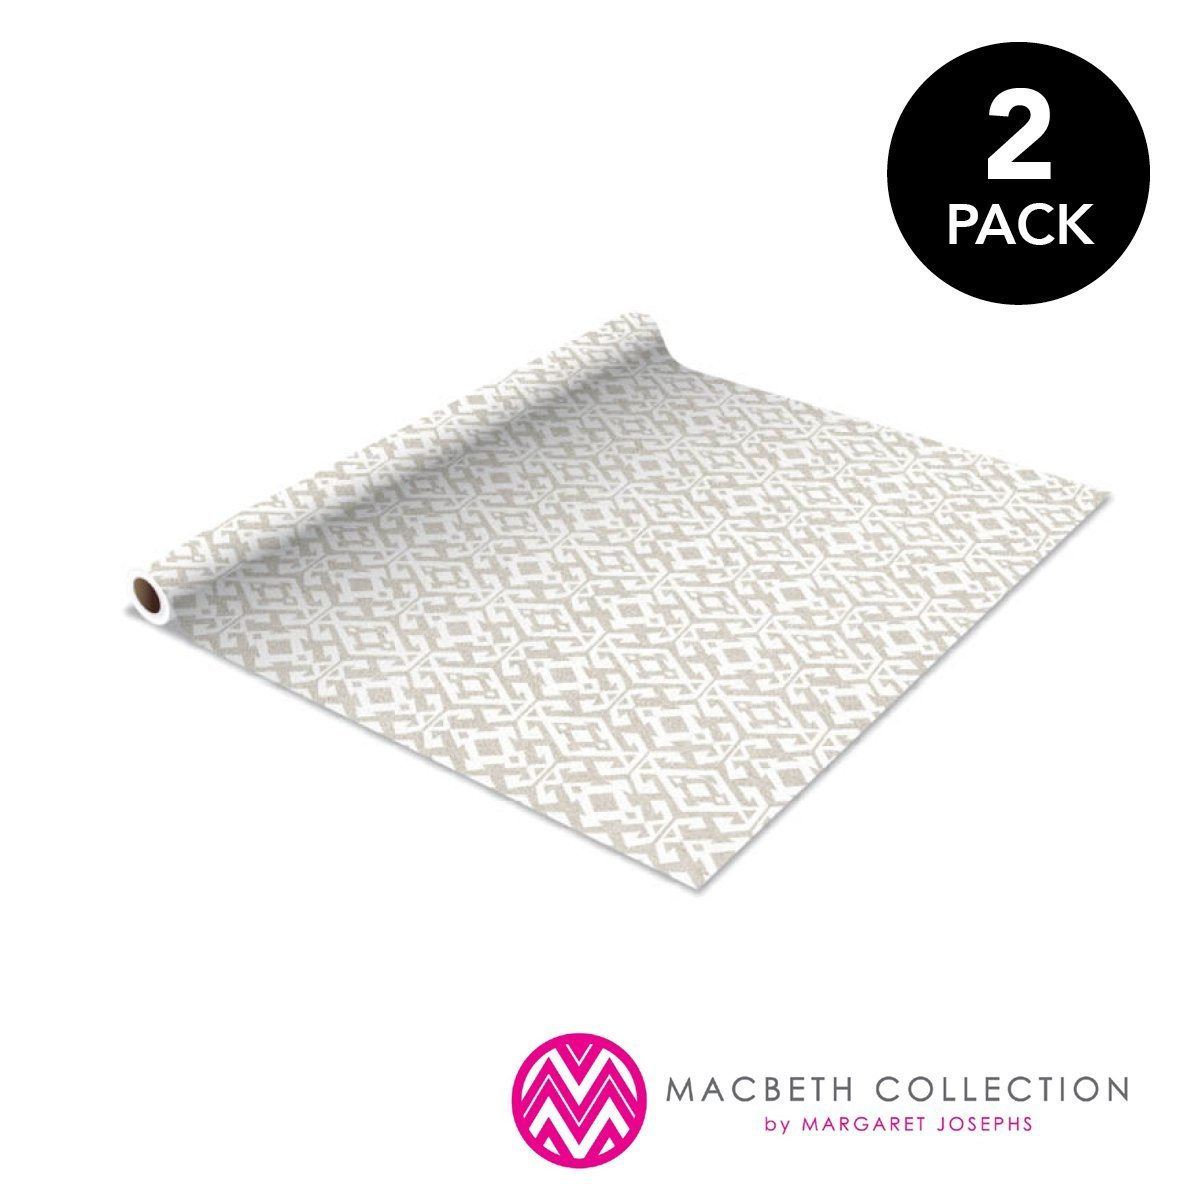 Macbeth Collection Self-Adhesive Shelf Liner, 2-Pack, Courtney Dove Gray Kennedy Home Collection SYNCHKG126554